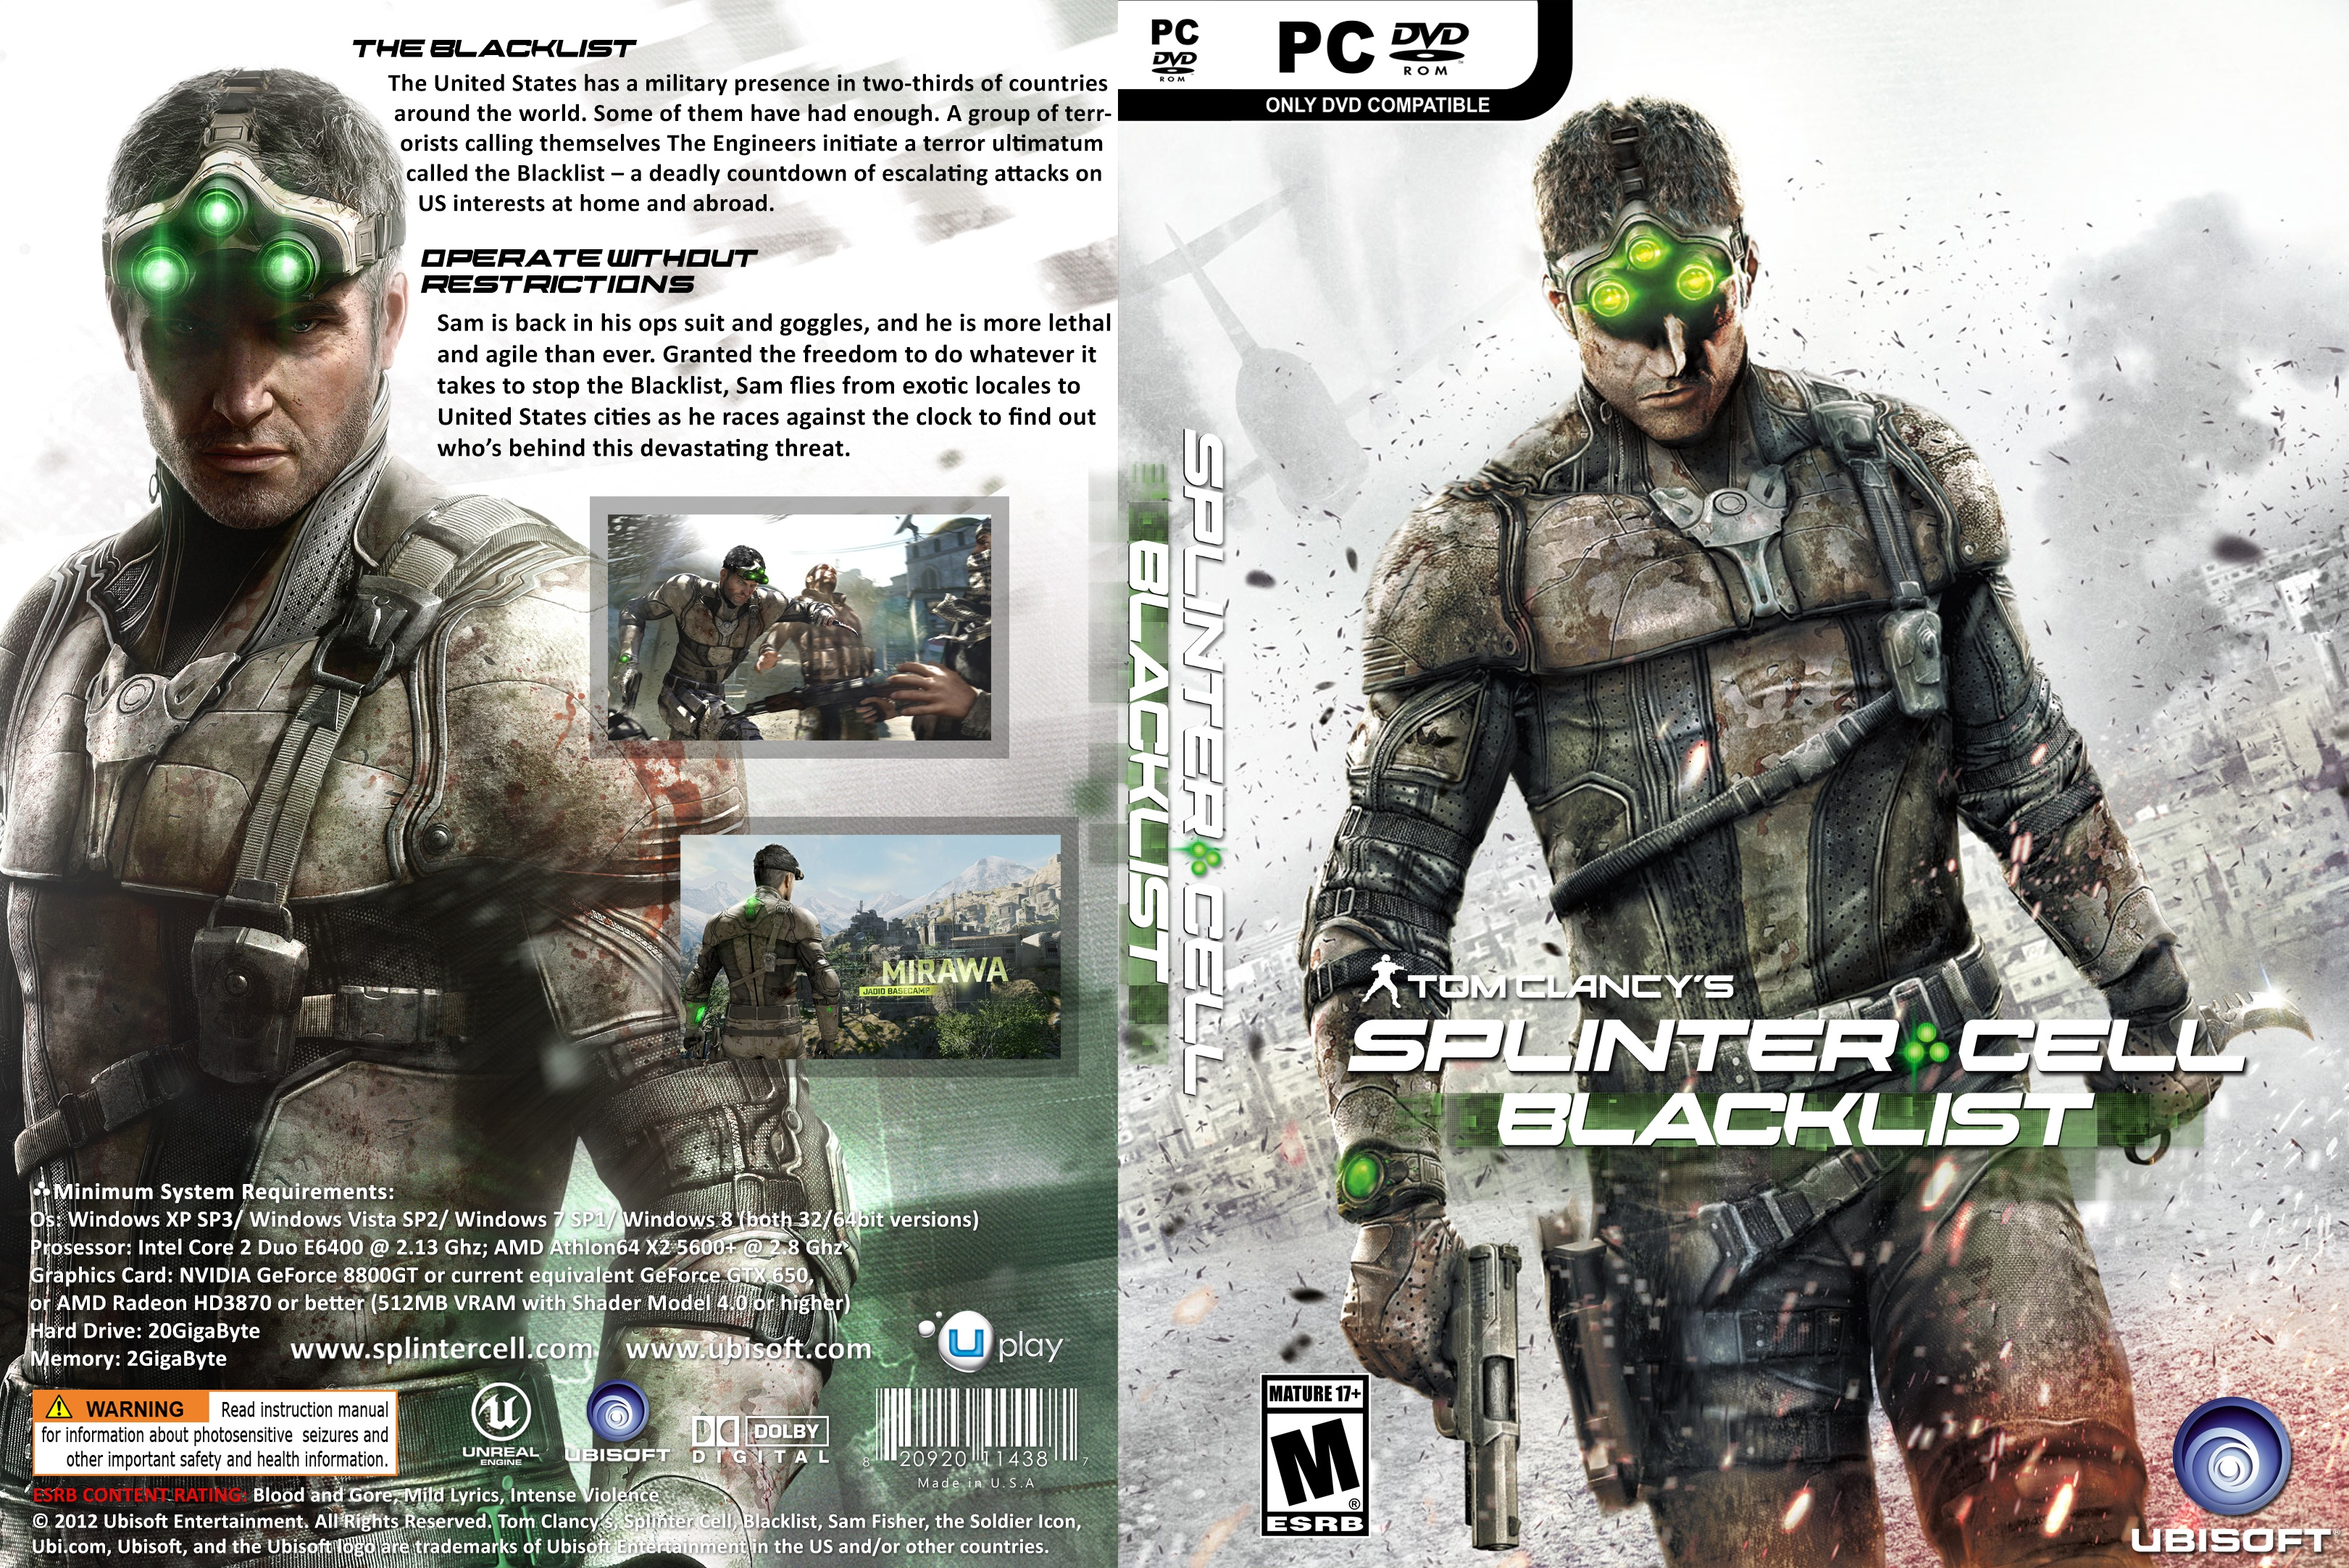 splinter cell blacklist game download for pc ocean of games